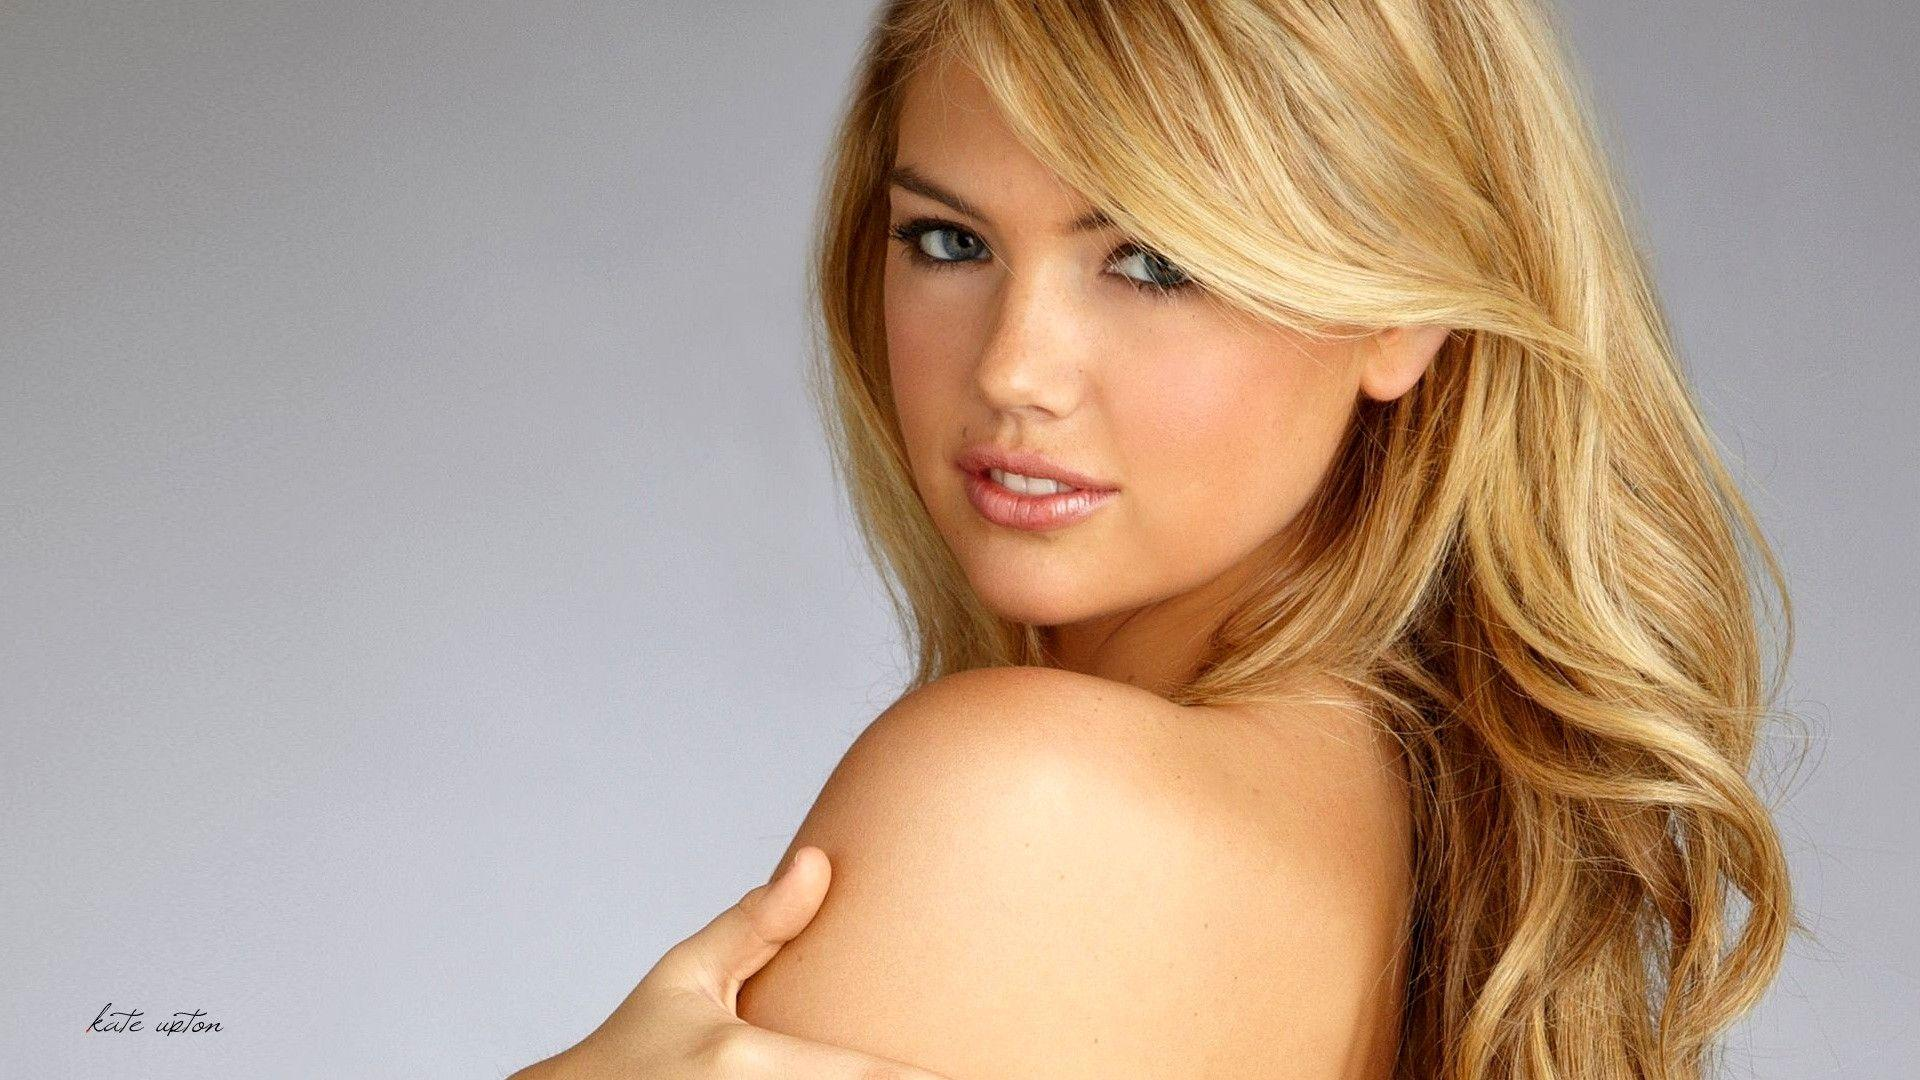 kate upton wallpapers swimsuit-#12